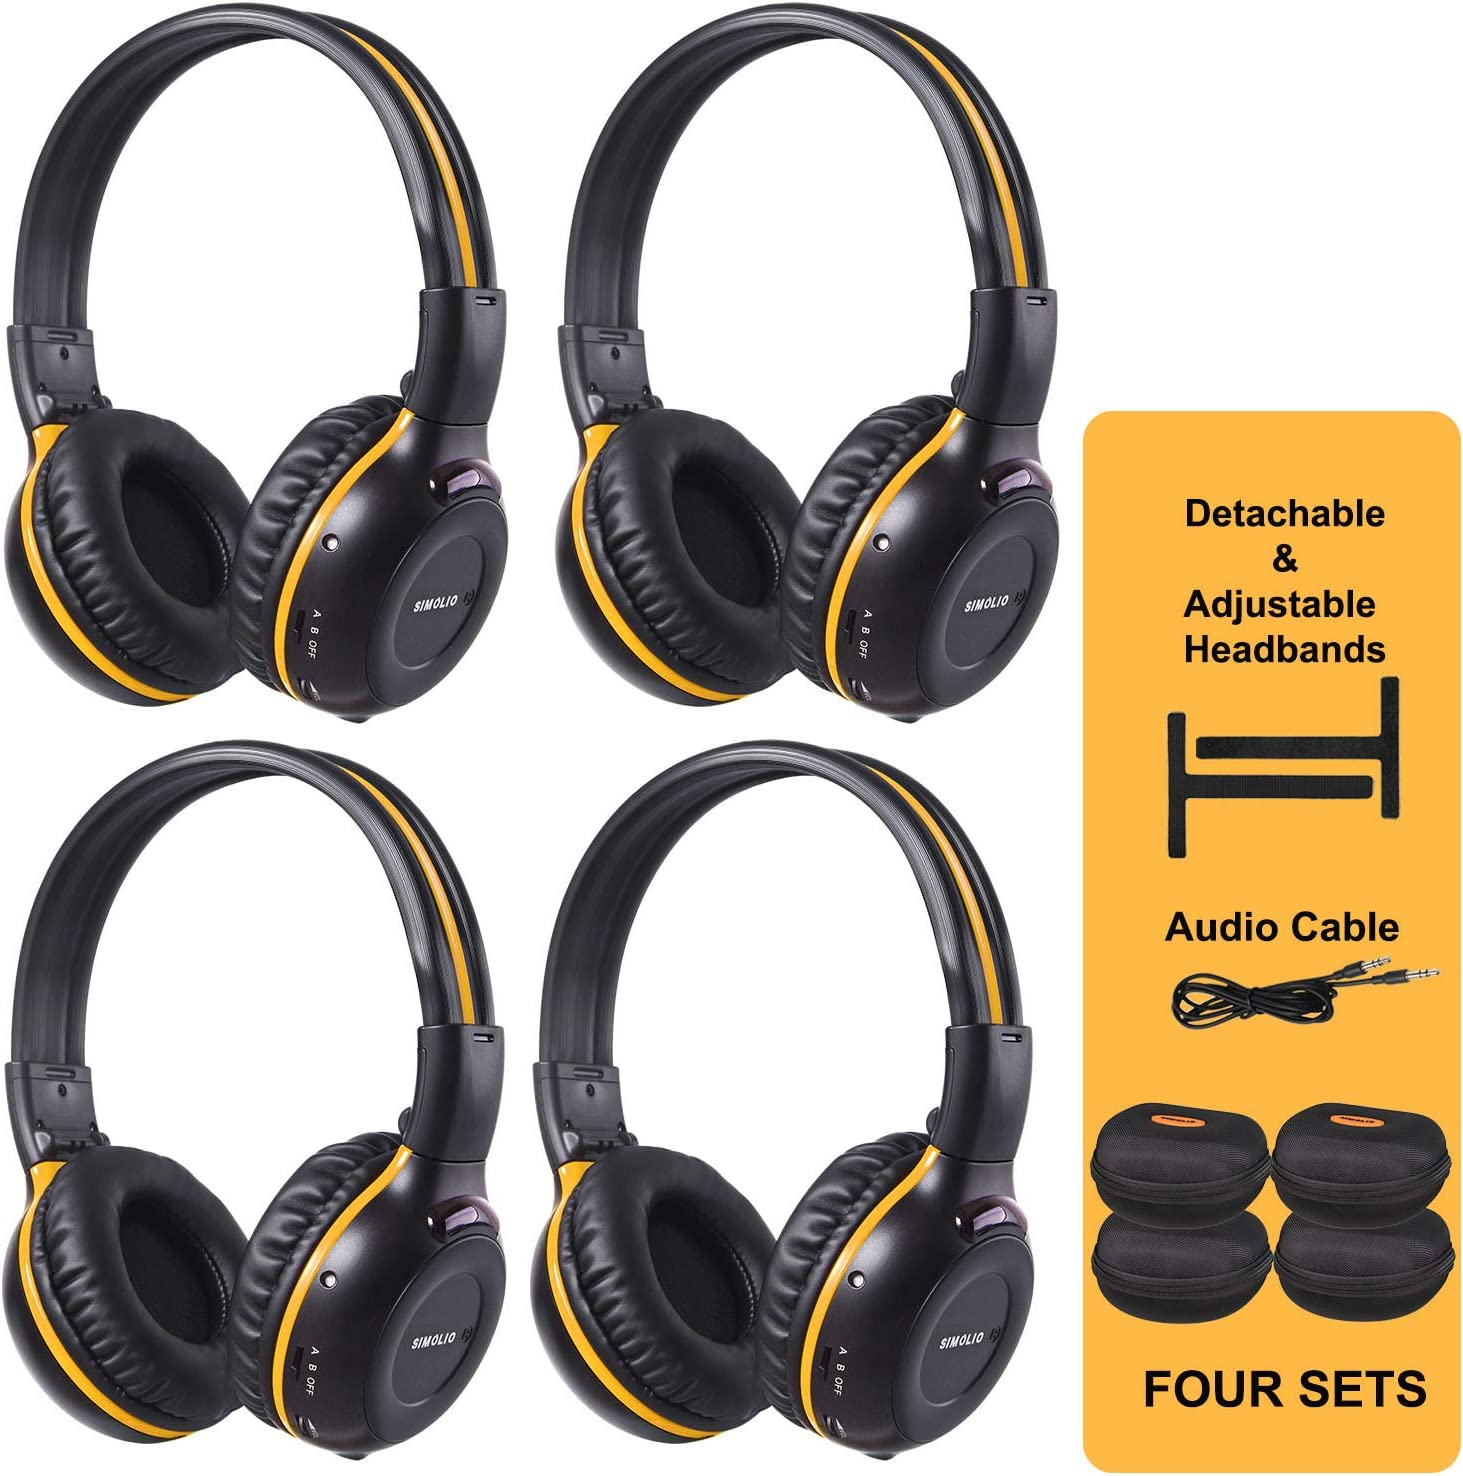 Amazon Com Simolio 4 Pack Of Wireless Dvd Headphones With Hard Eva Cases Car Kid Ir Headphones Infrared Wireless Headphones For Headrest Car Video On Ear Car Headset 2 Channel Not Work On 2017 Gm S Or Pacifica